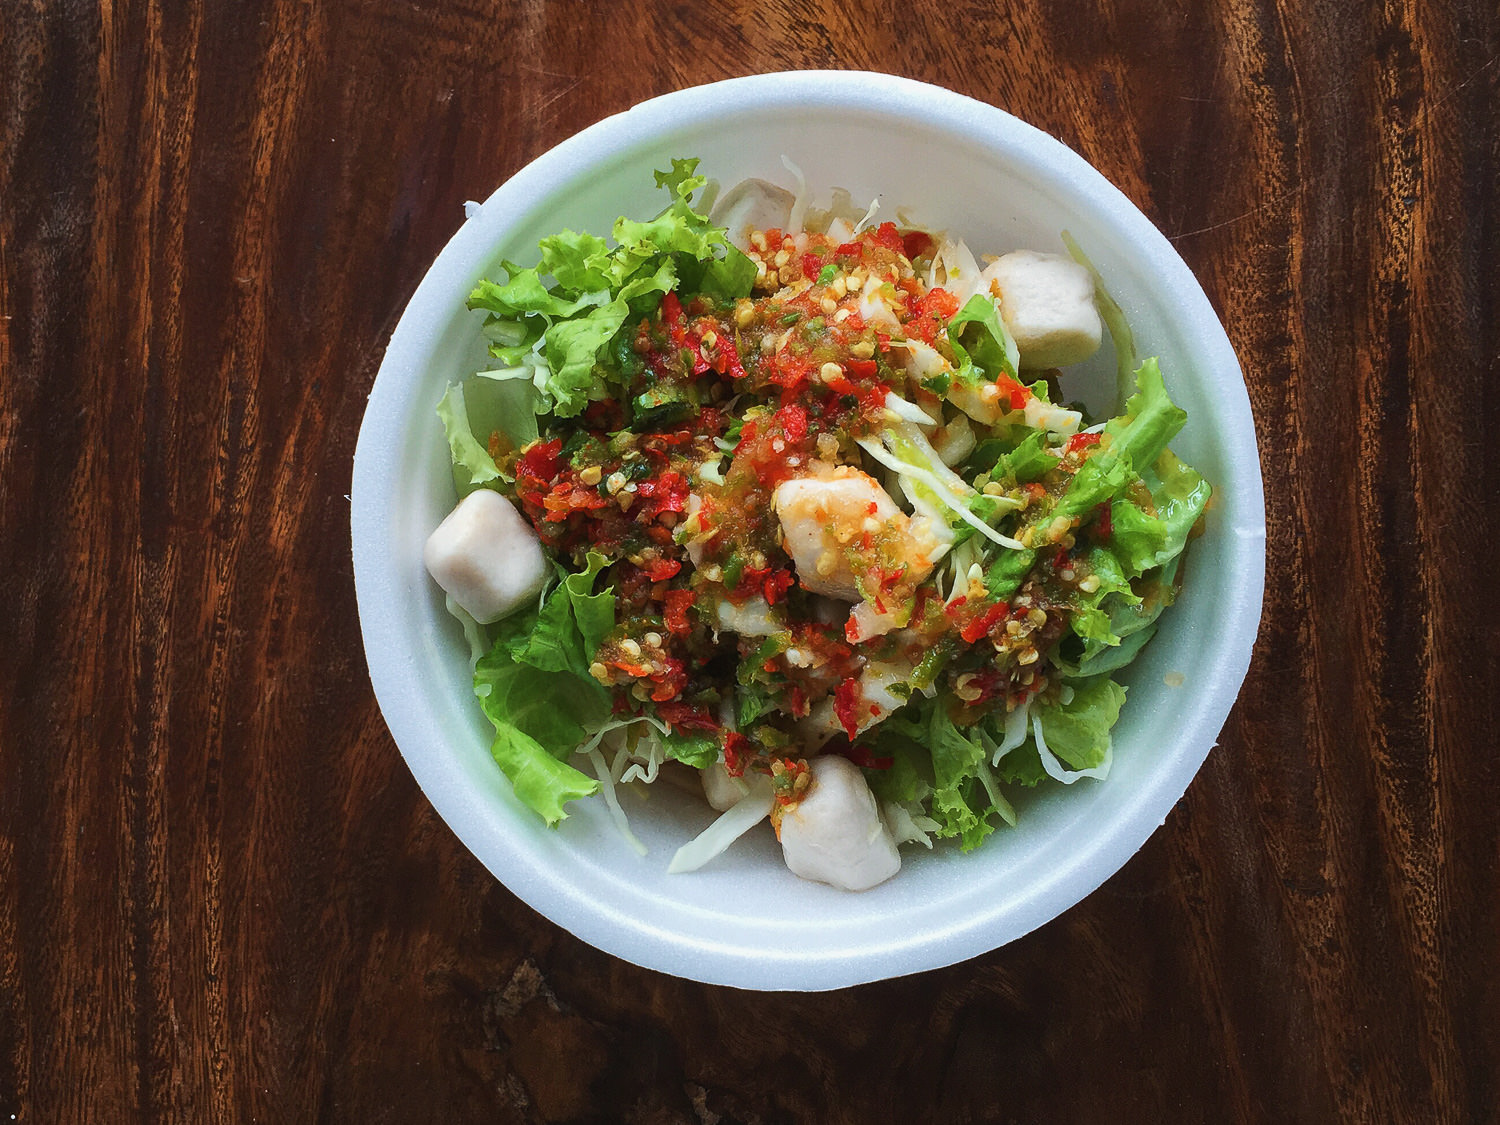 Spicy Vegan Fish Ball Salad